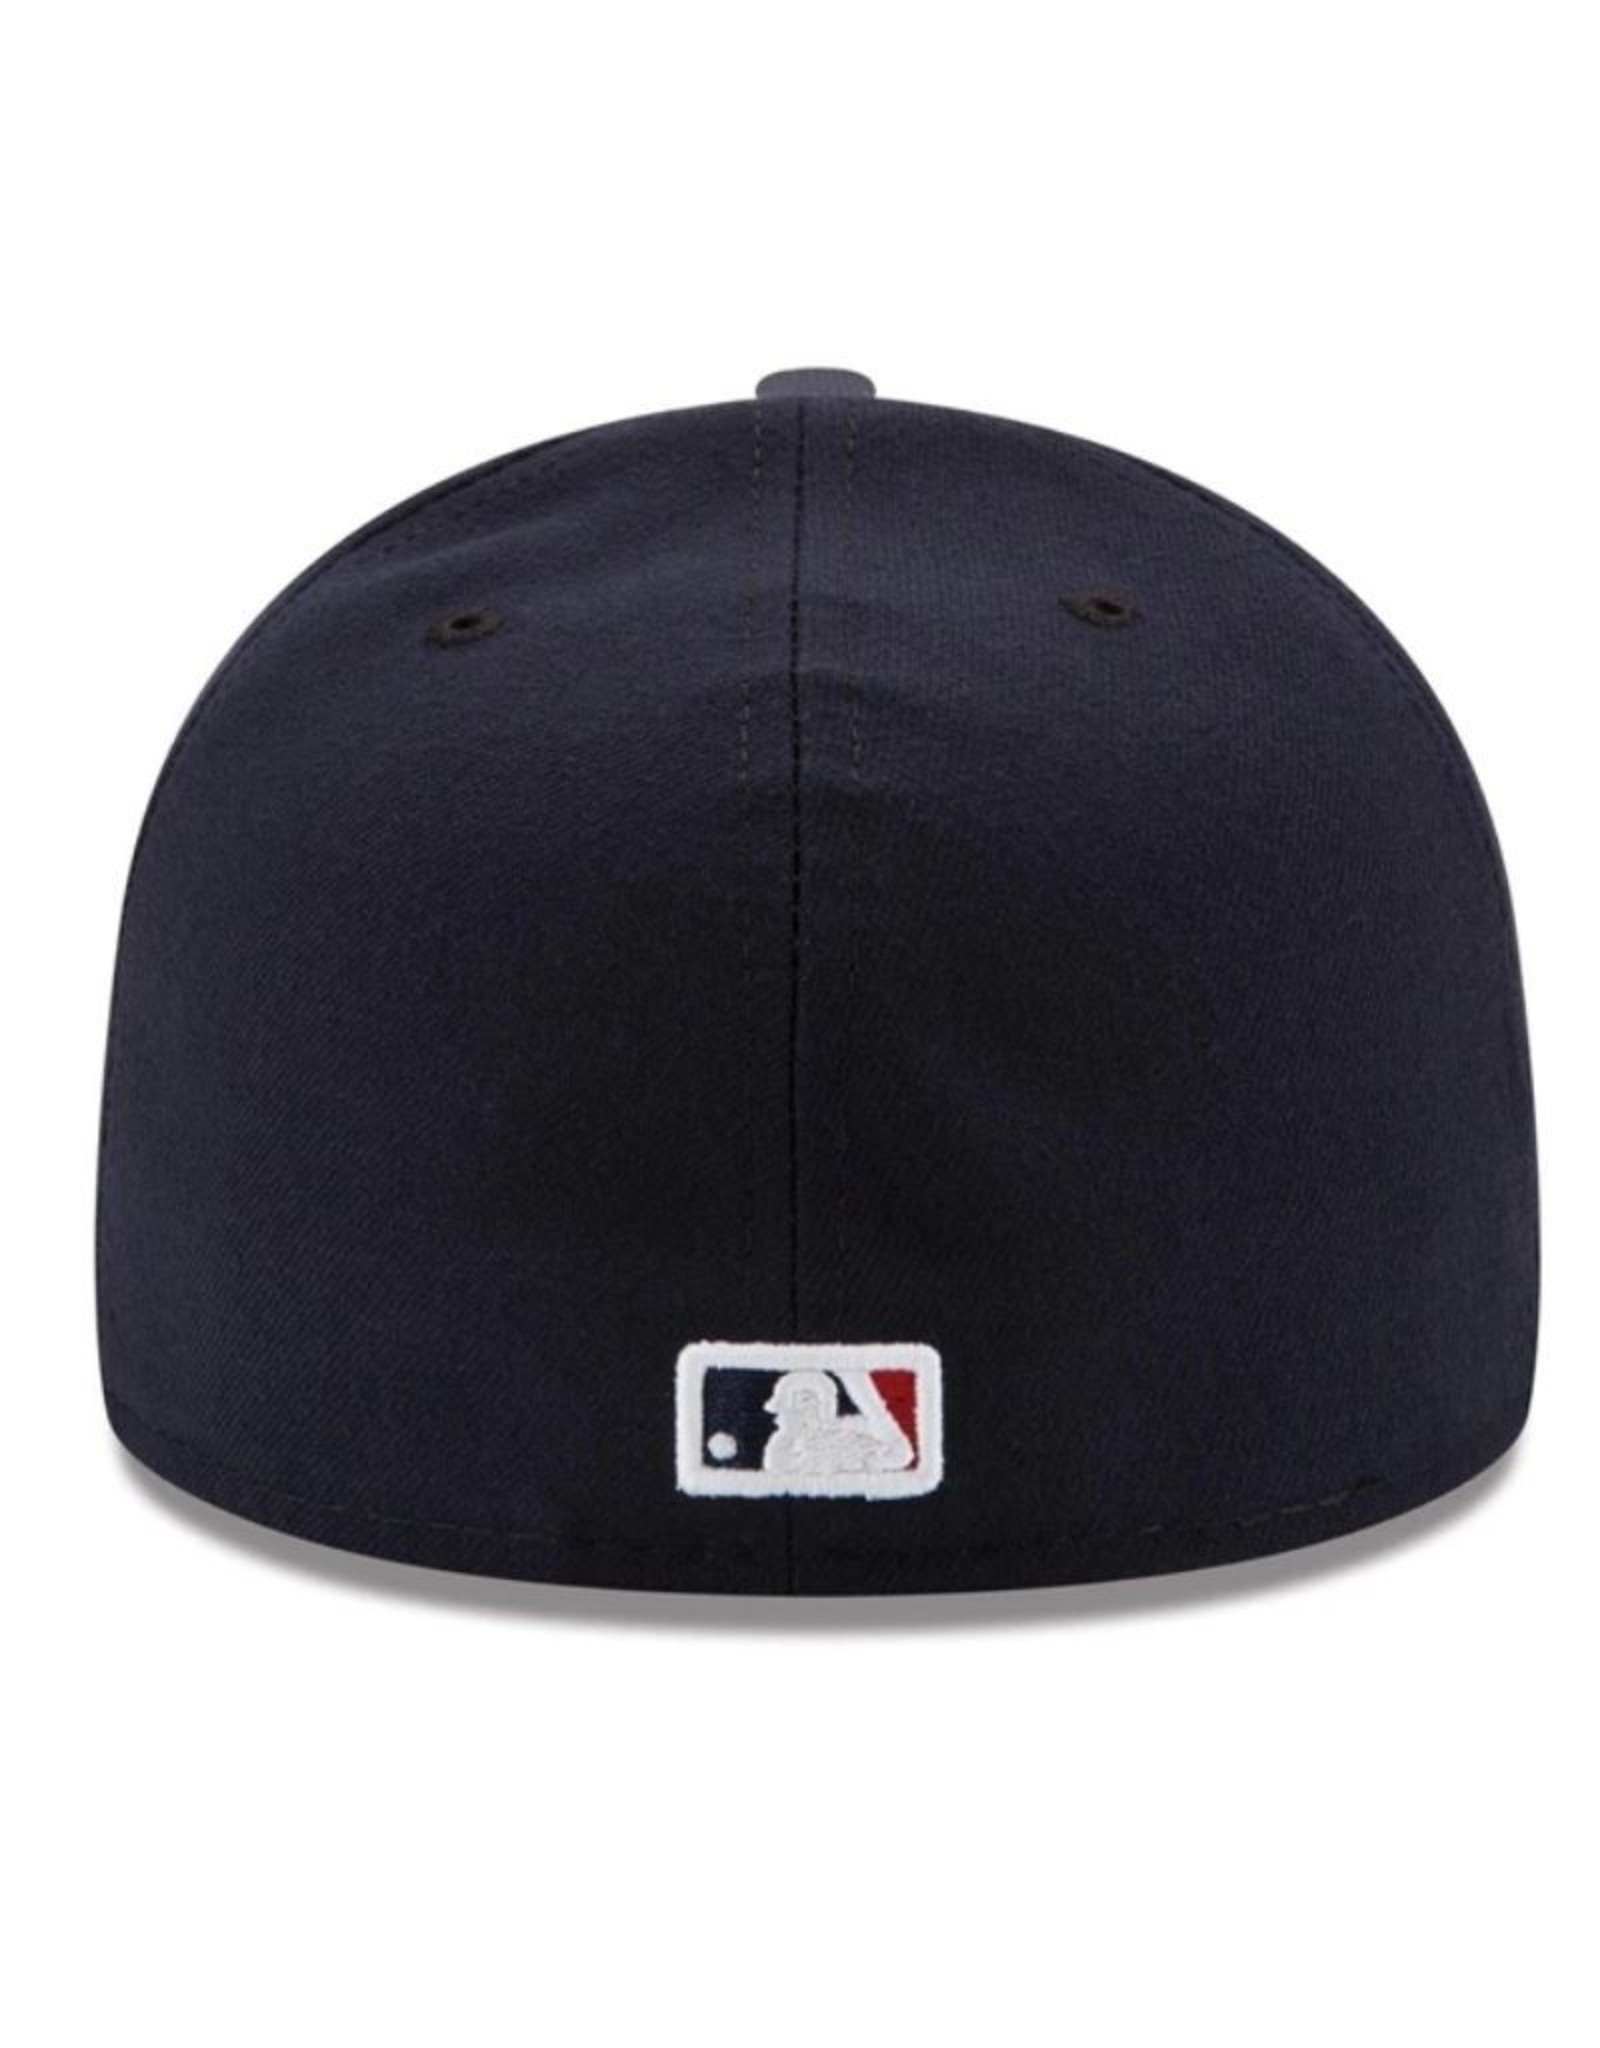 New Era On-Field Authentic 59FIFTY Road Hat Cleveland Indians Navy